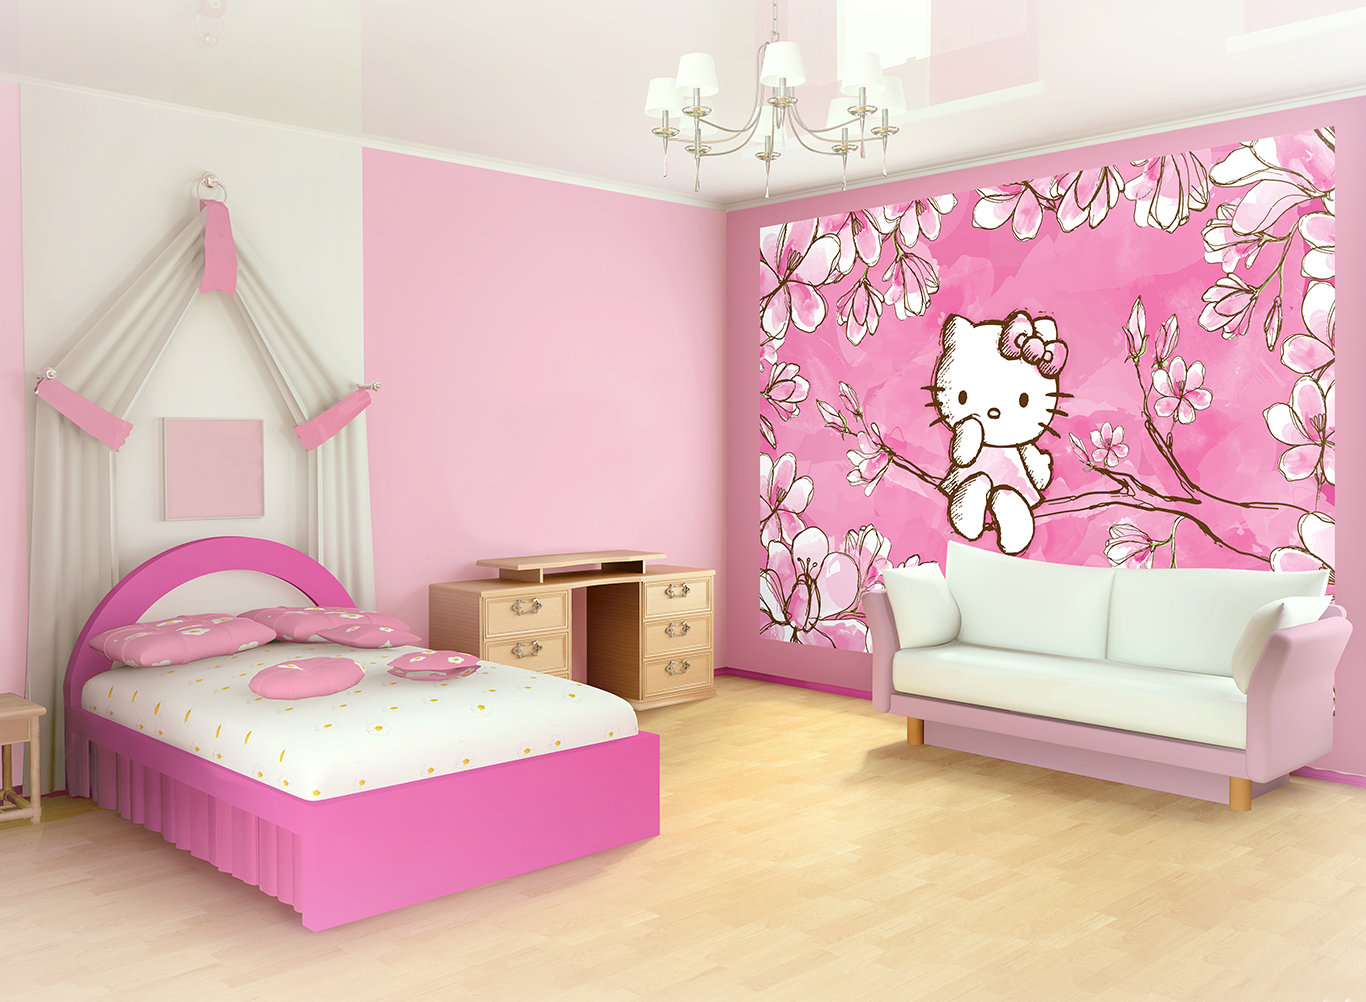 poster g ant hello kitty papier peint l xxxl d coration murale decokids tous leurs h ros. Black Bedroom Furniture Sets. Home Design Ideas